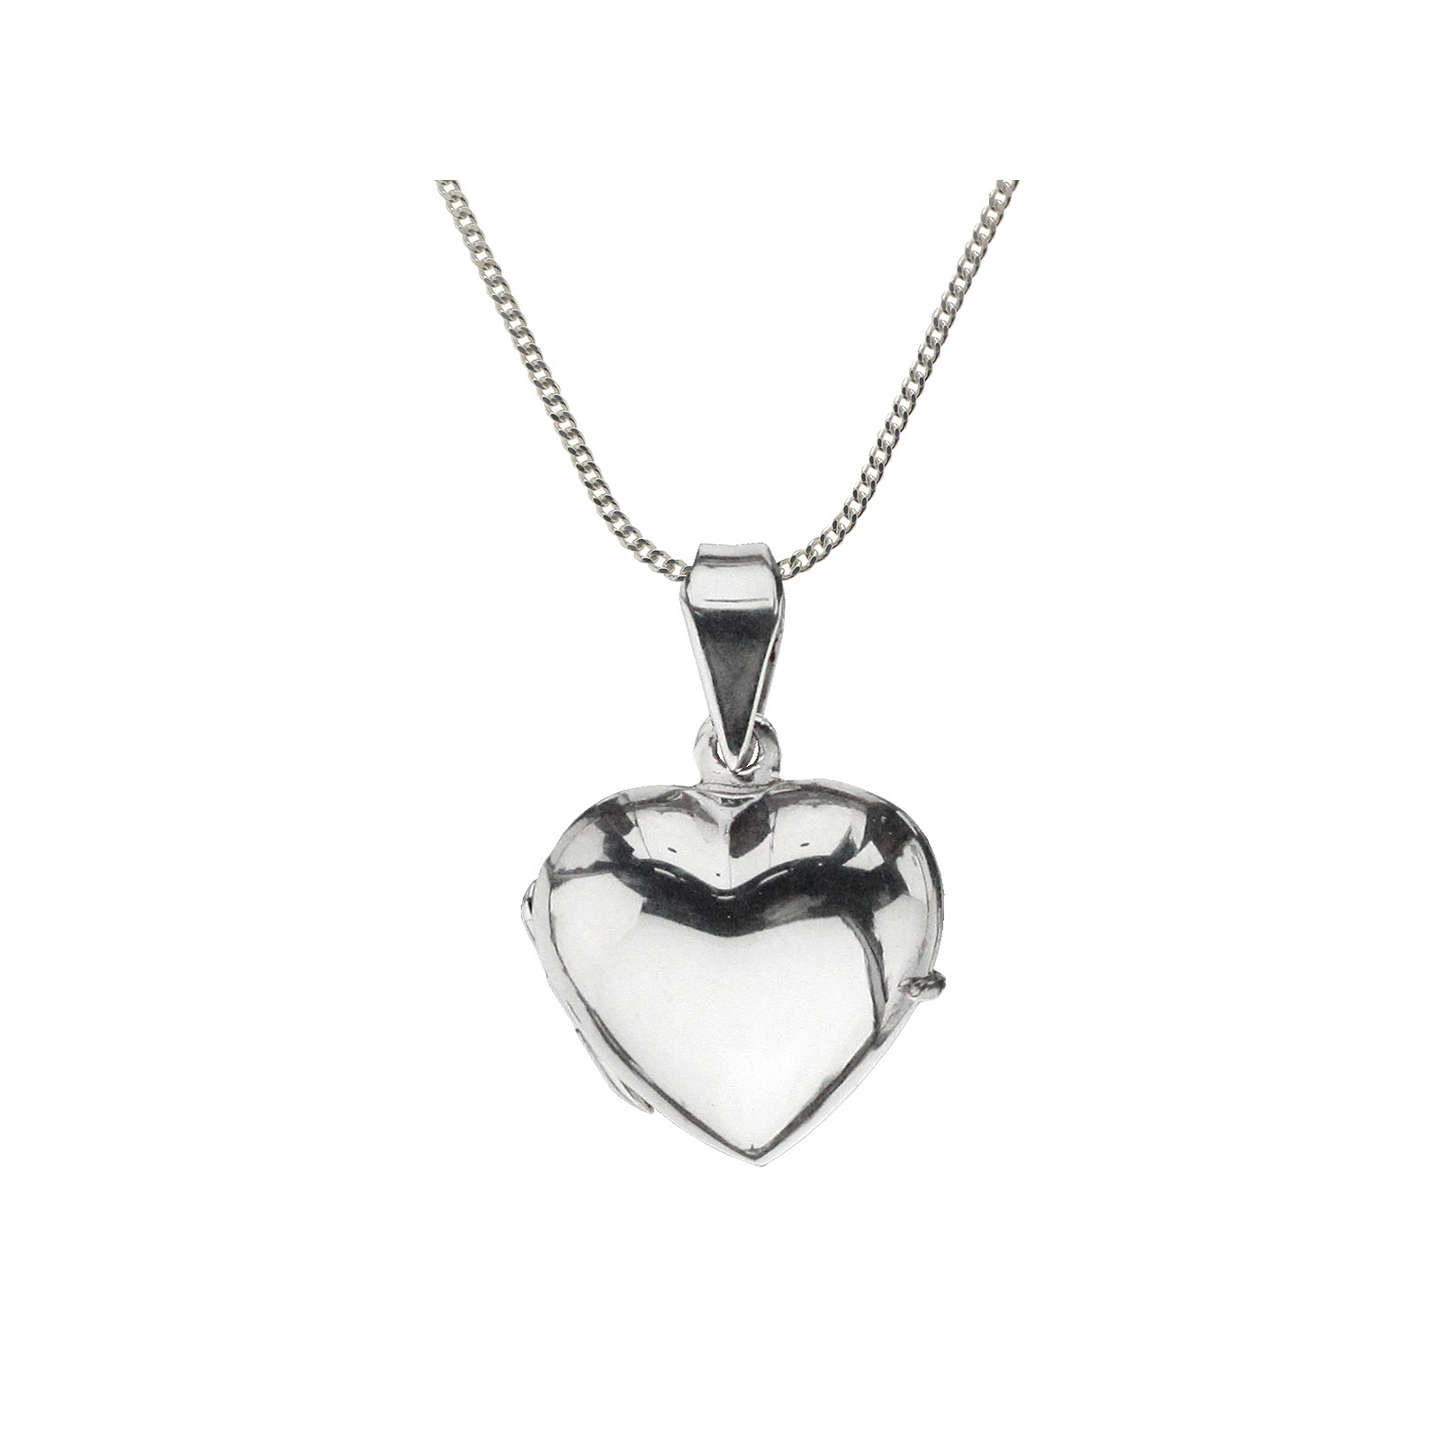 jewelry heart silver necklace shaped pendant floating bling ribbon appl jtn open